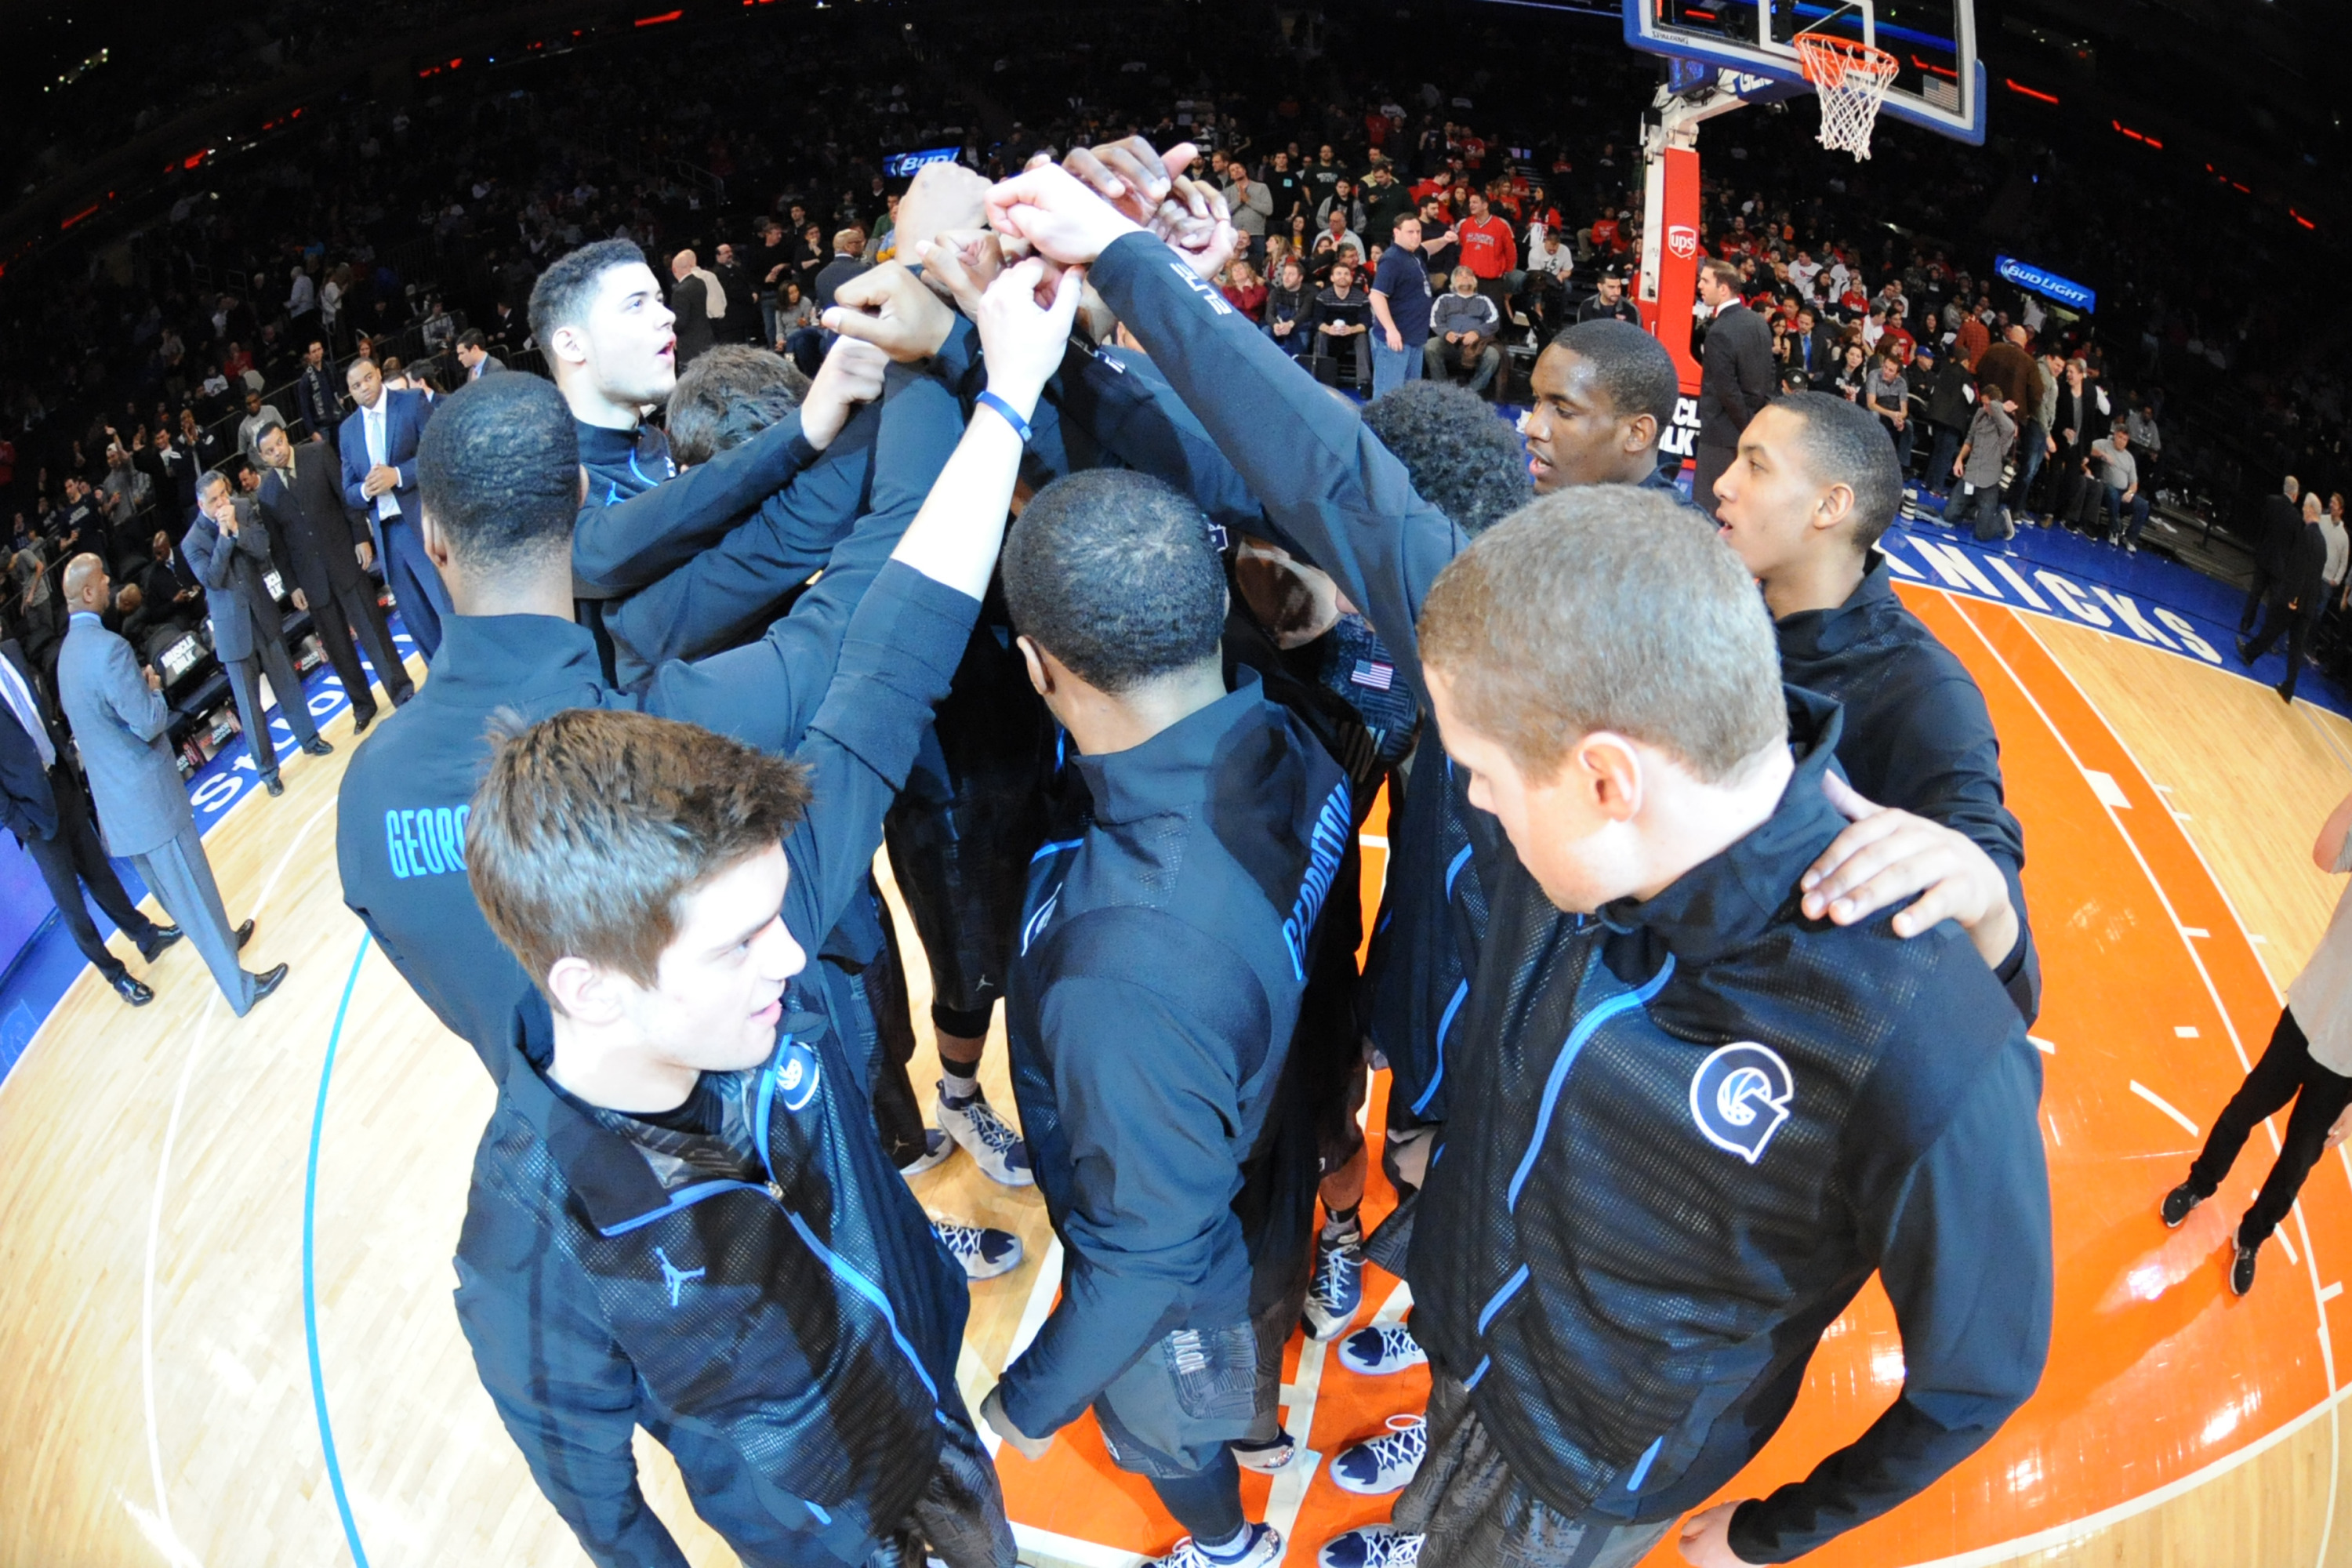 Highlighted by a trip to the Bahamas, a game at Madison Square Garden in New York City, 16 games at Verizon Center, including one against perennial national power Kansas and nine against BIG EAST Conference opponents, the Georgetown University men's basketball schedule for the 2014-15 season was released on Tuesday afternoon.